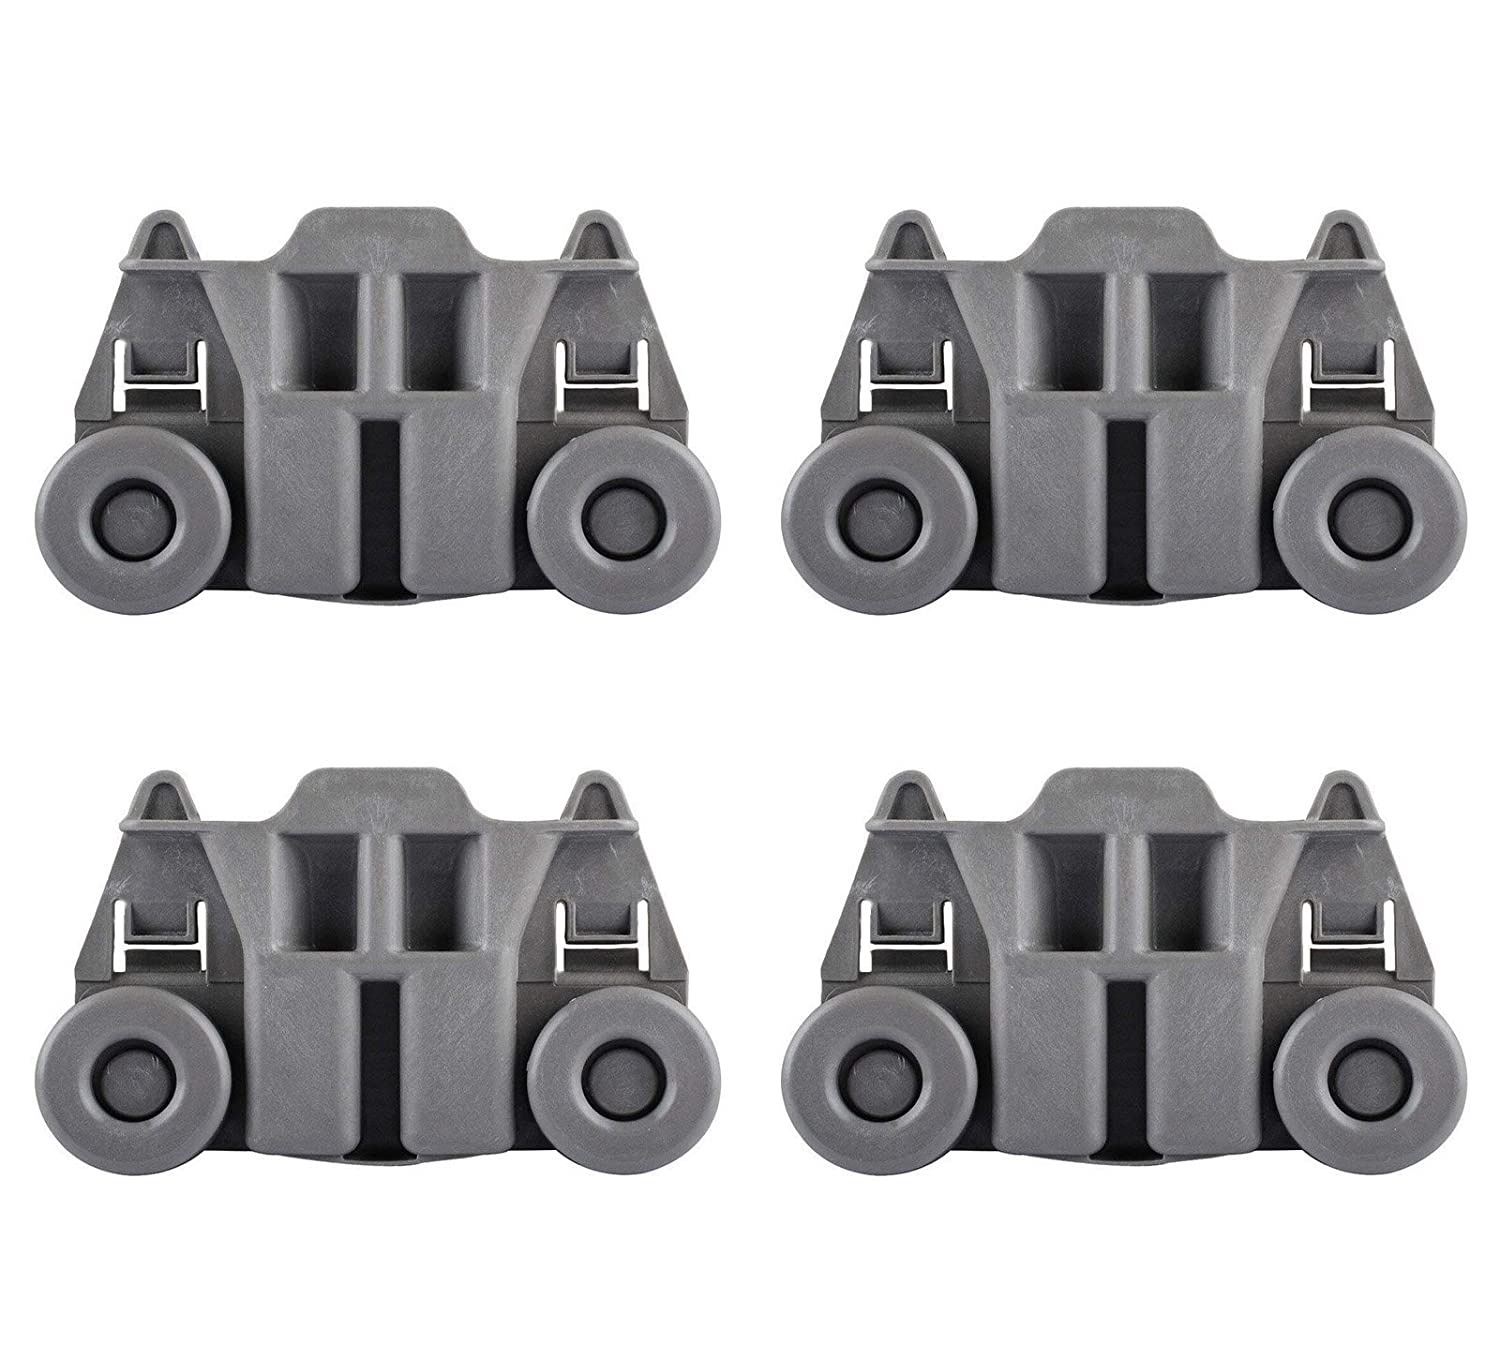 Siwdoy (Pack of 4) W10195417 Dishwasher Wheel for Whirlpool Kenmore Dish Rack WPW10195417 AP4538395 PS2579553